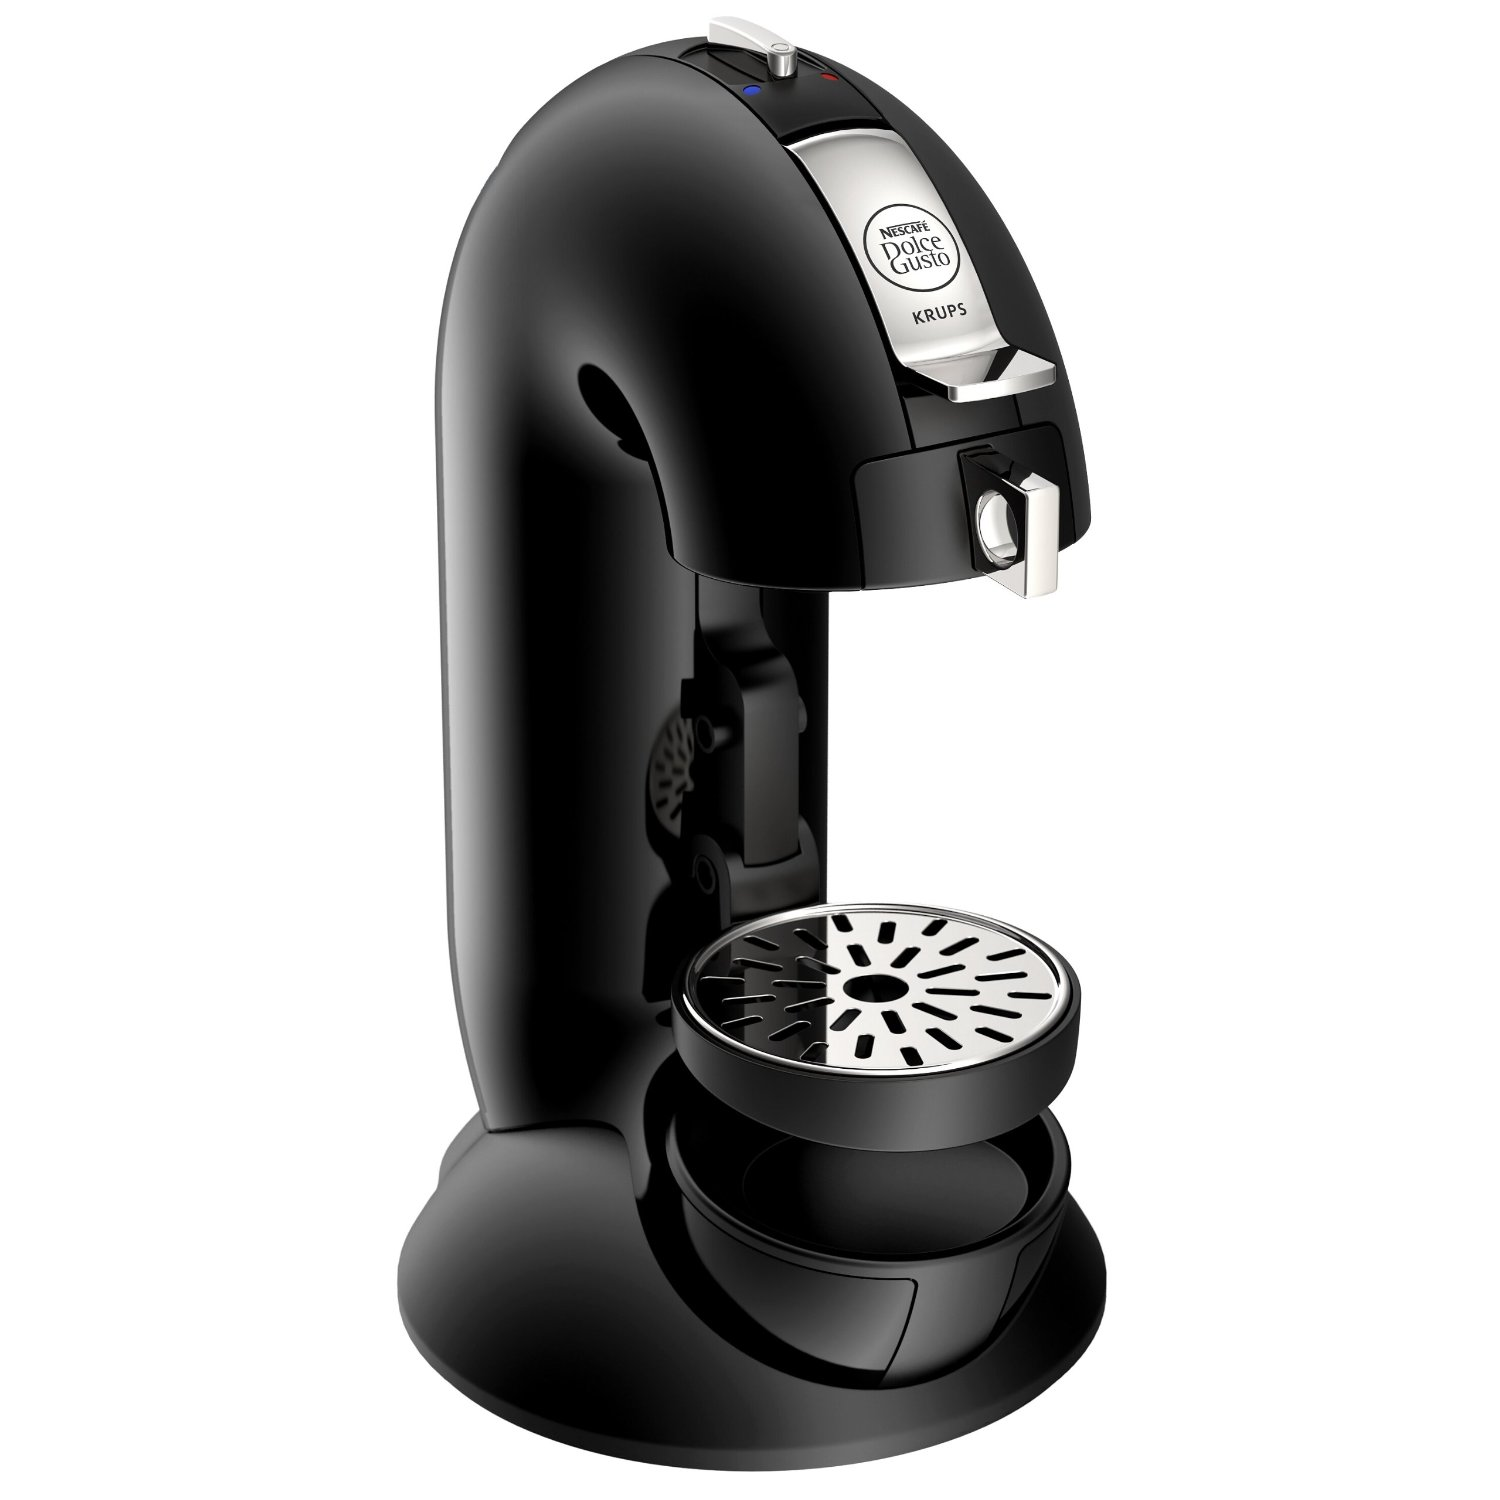 krups nescafe dolce gusto coffee maker 15 bar black capsule machine kp301040 ebay. Black Bedroom Furniture Sets. Home Design Ideas